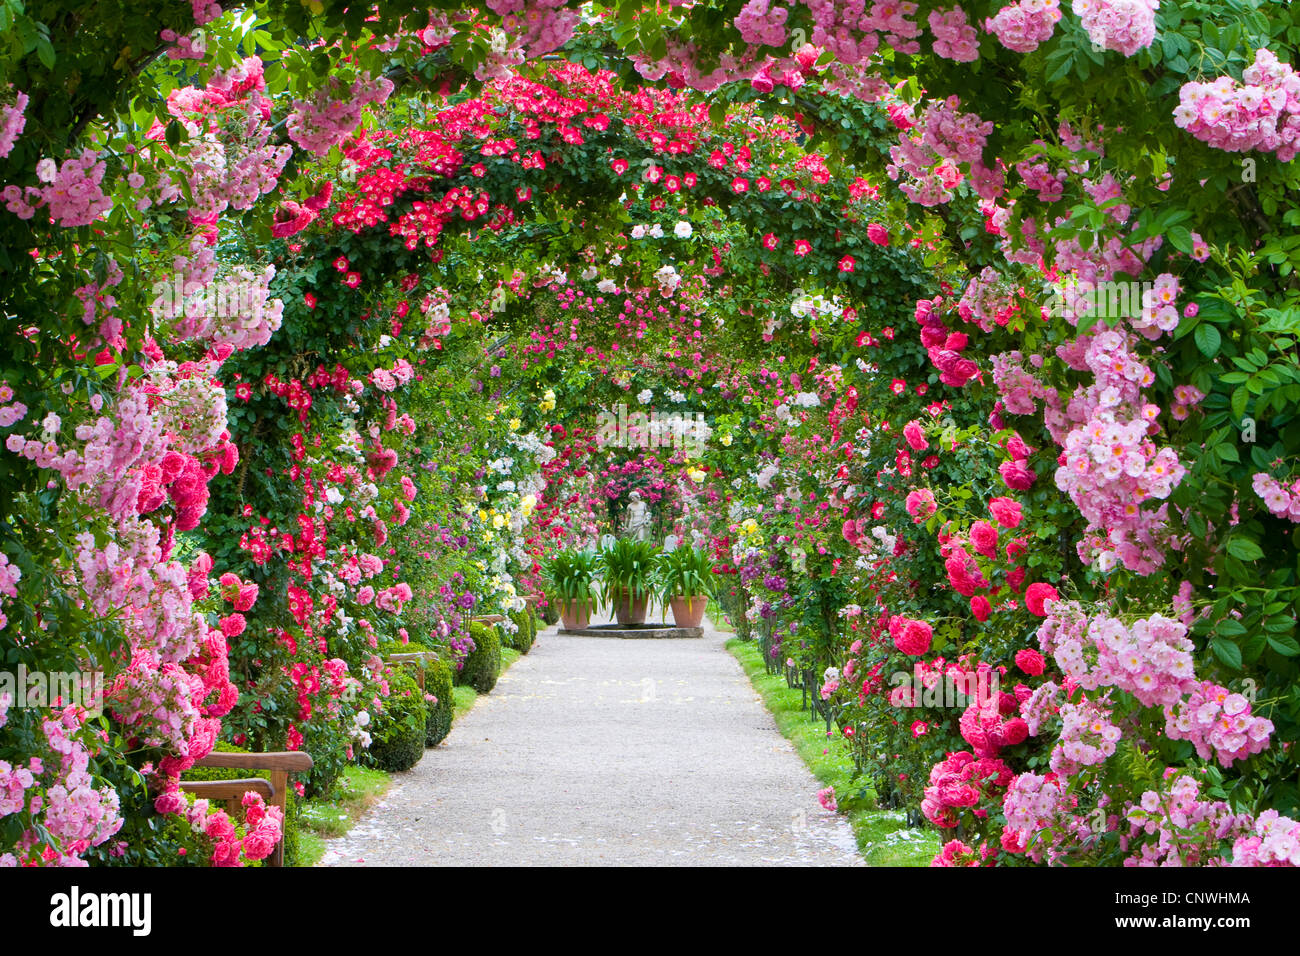 Amazing Rose Arches In A Rose Garden, Germany